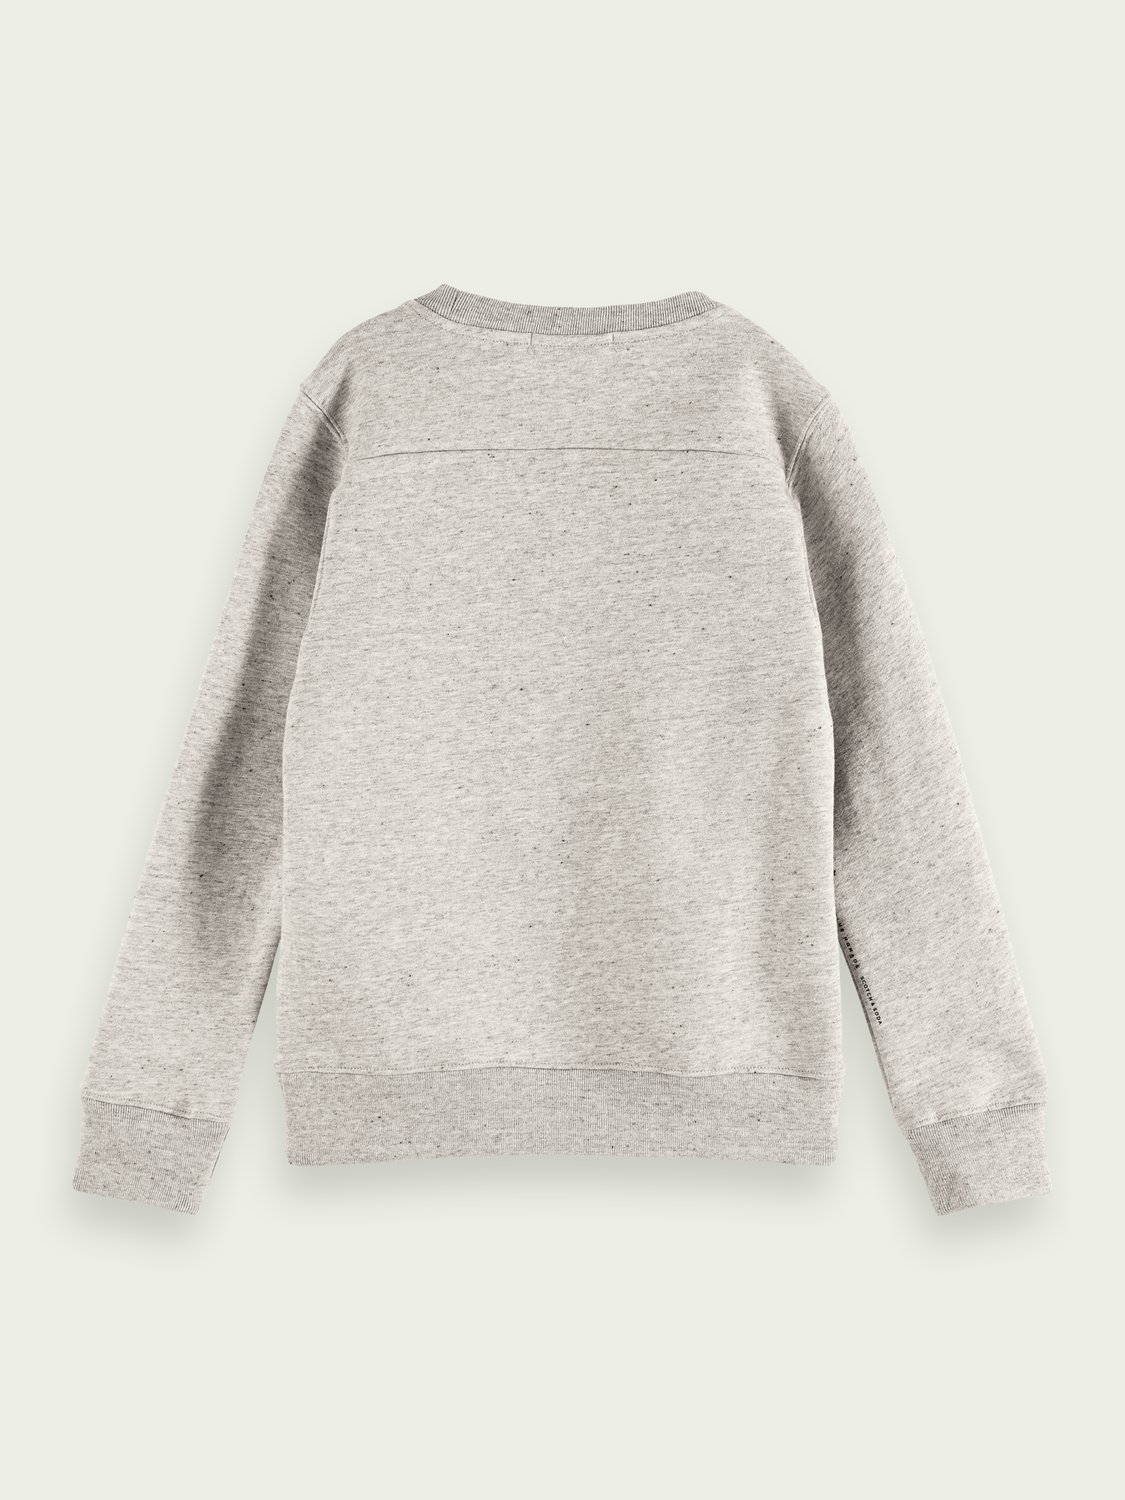 Kids Everyday crewneck cotton sweater